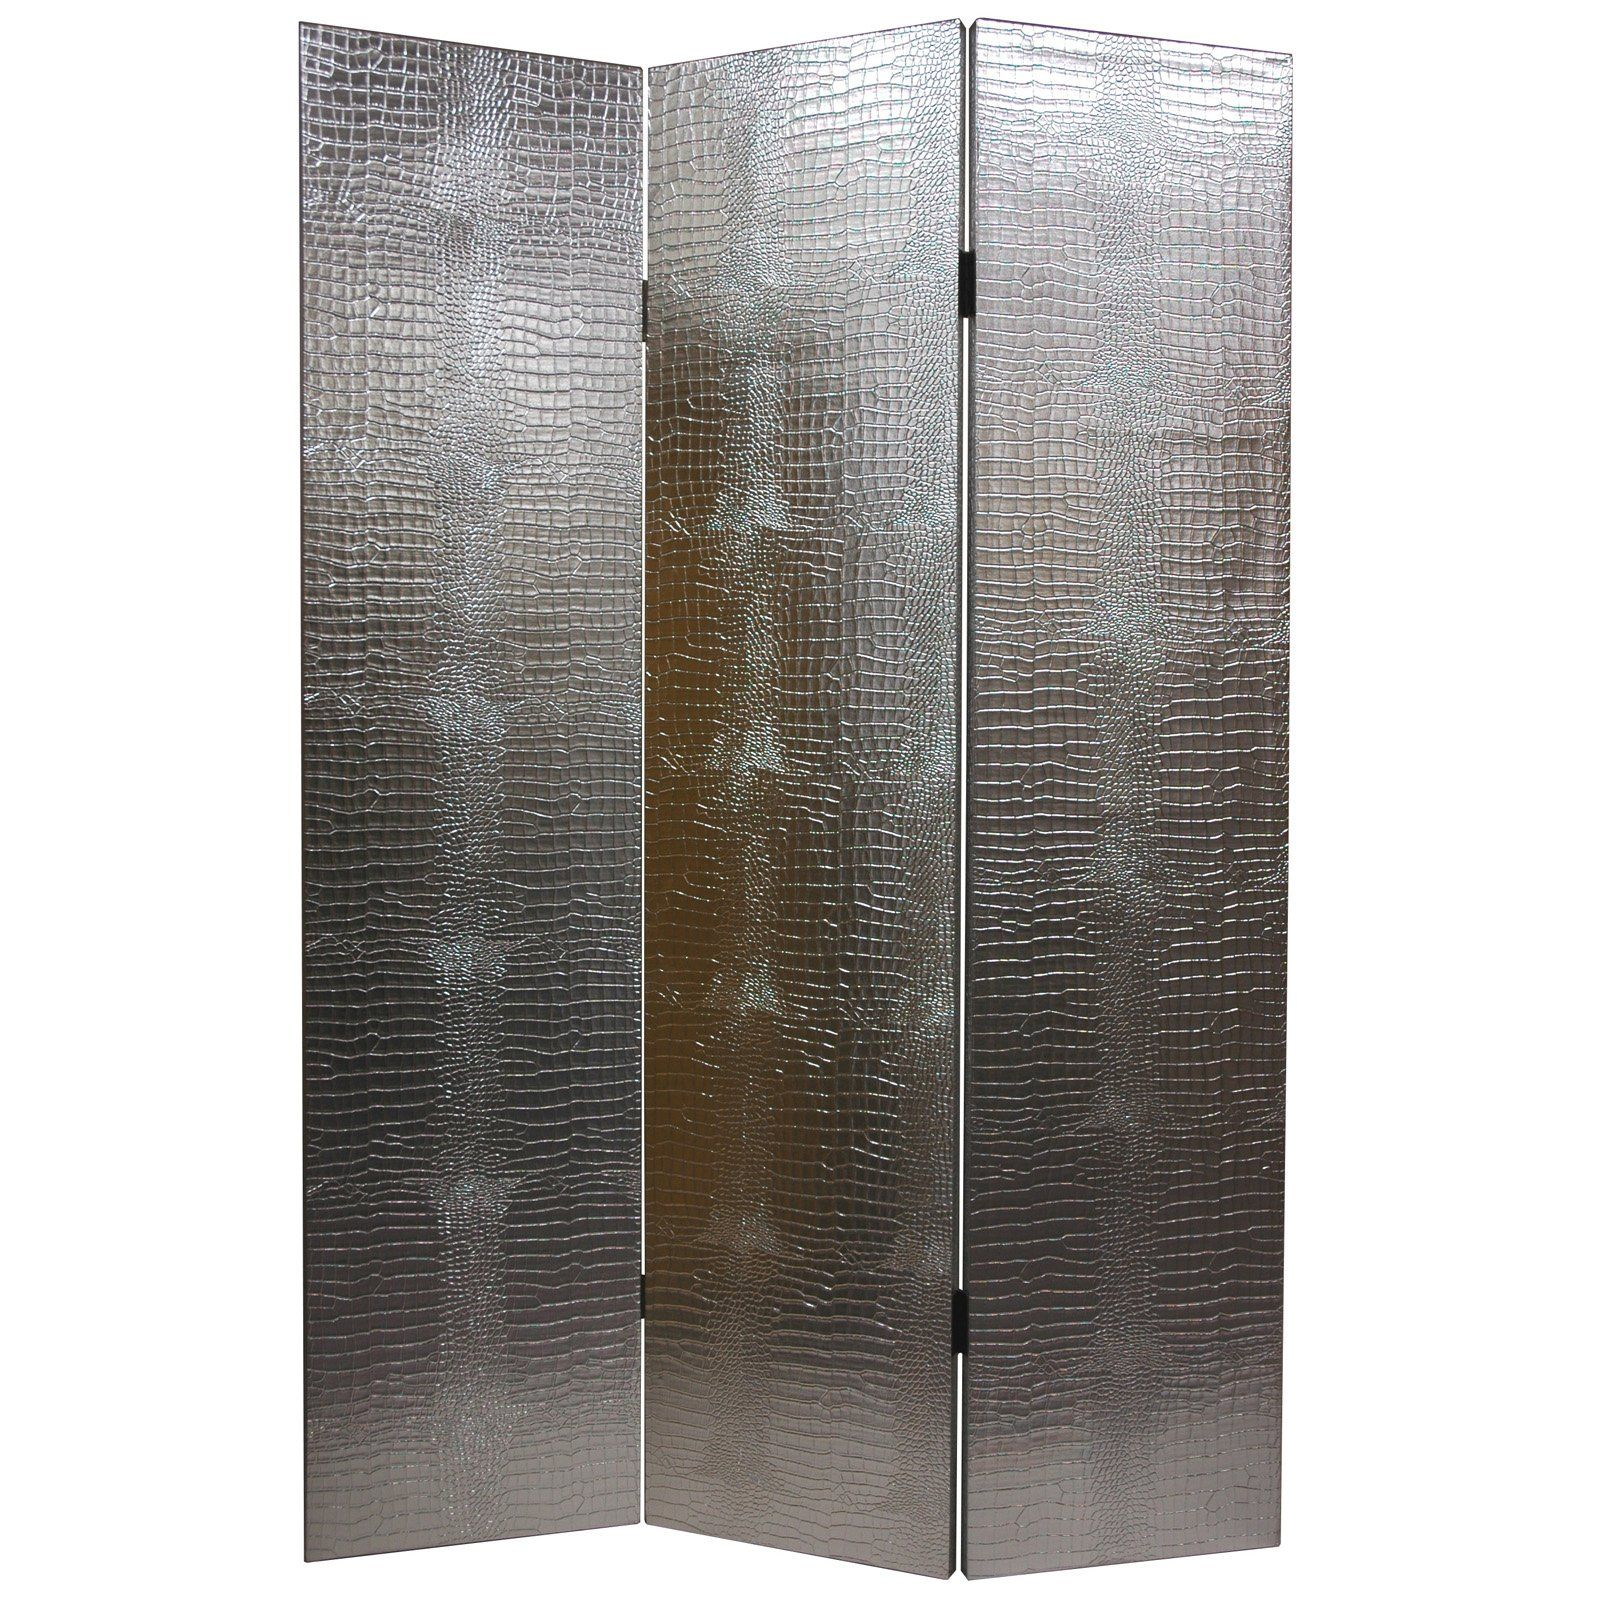 Have To Have It Faux Leather Silver Crocodile Room Divider